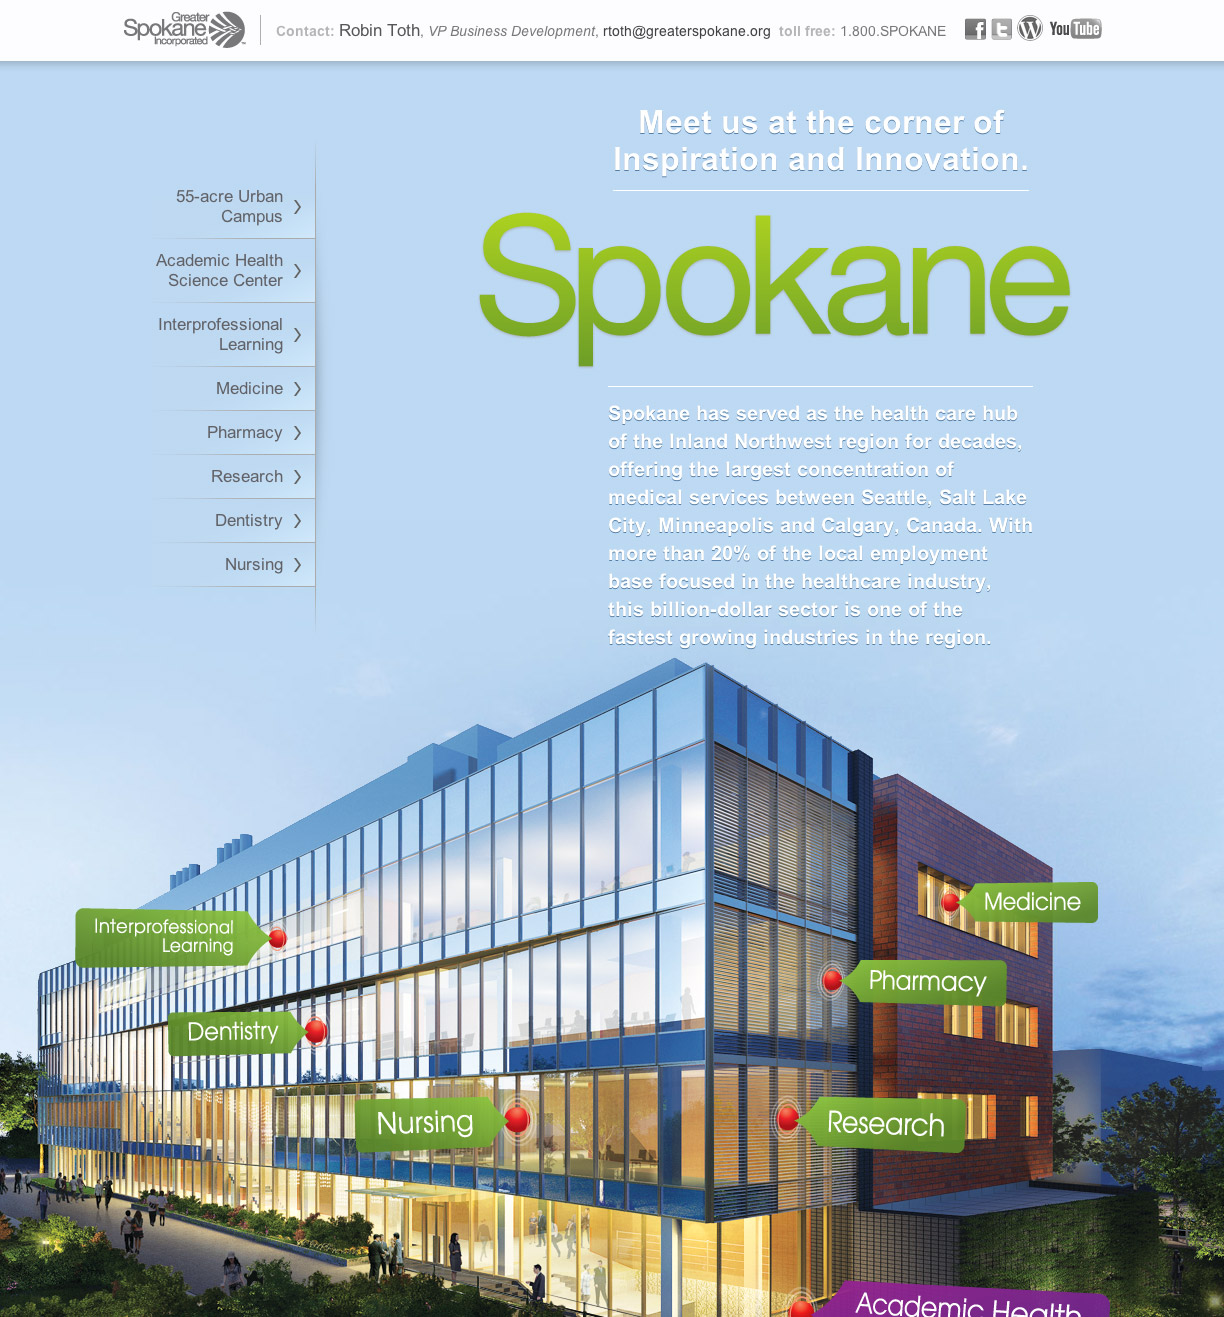 iSpokane.com website development & design.